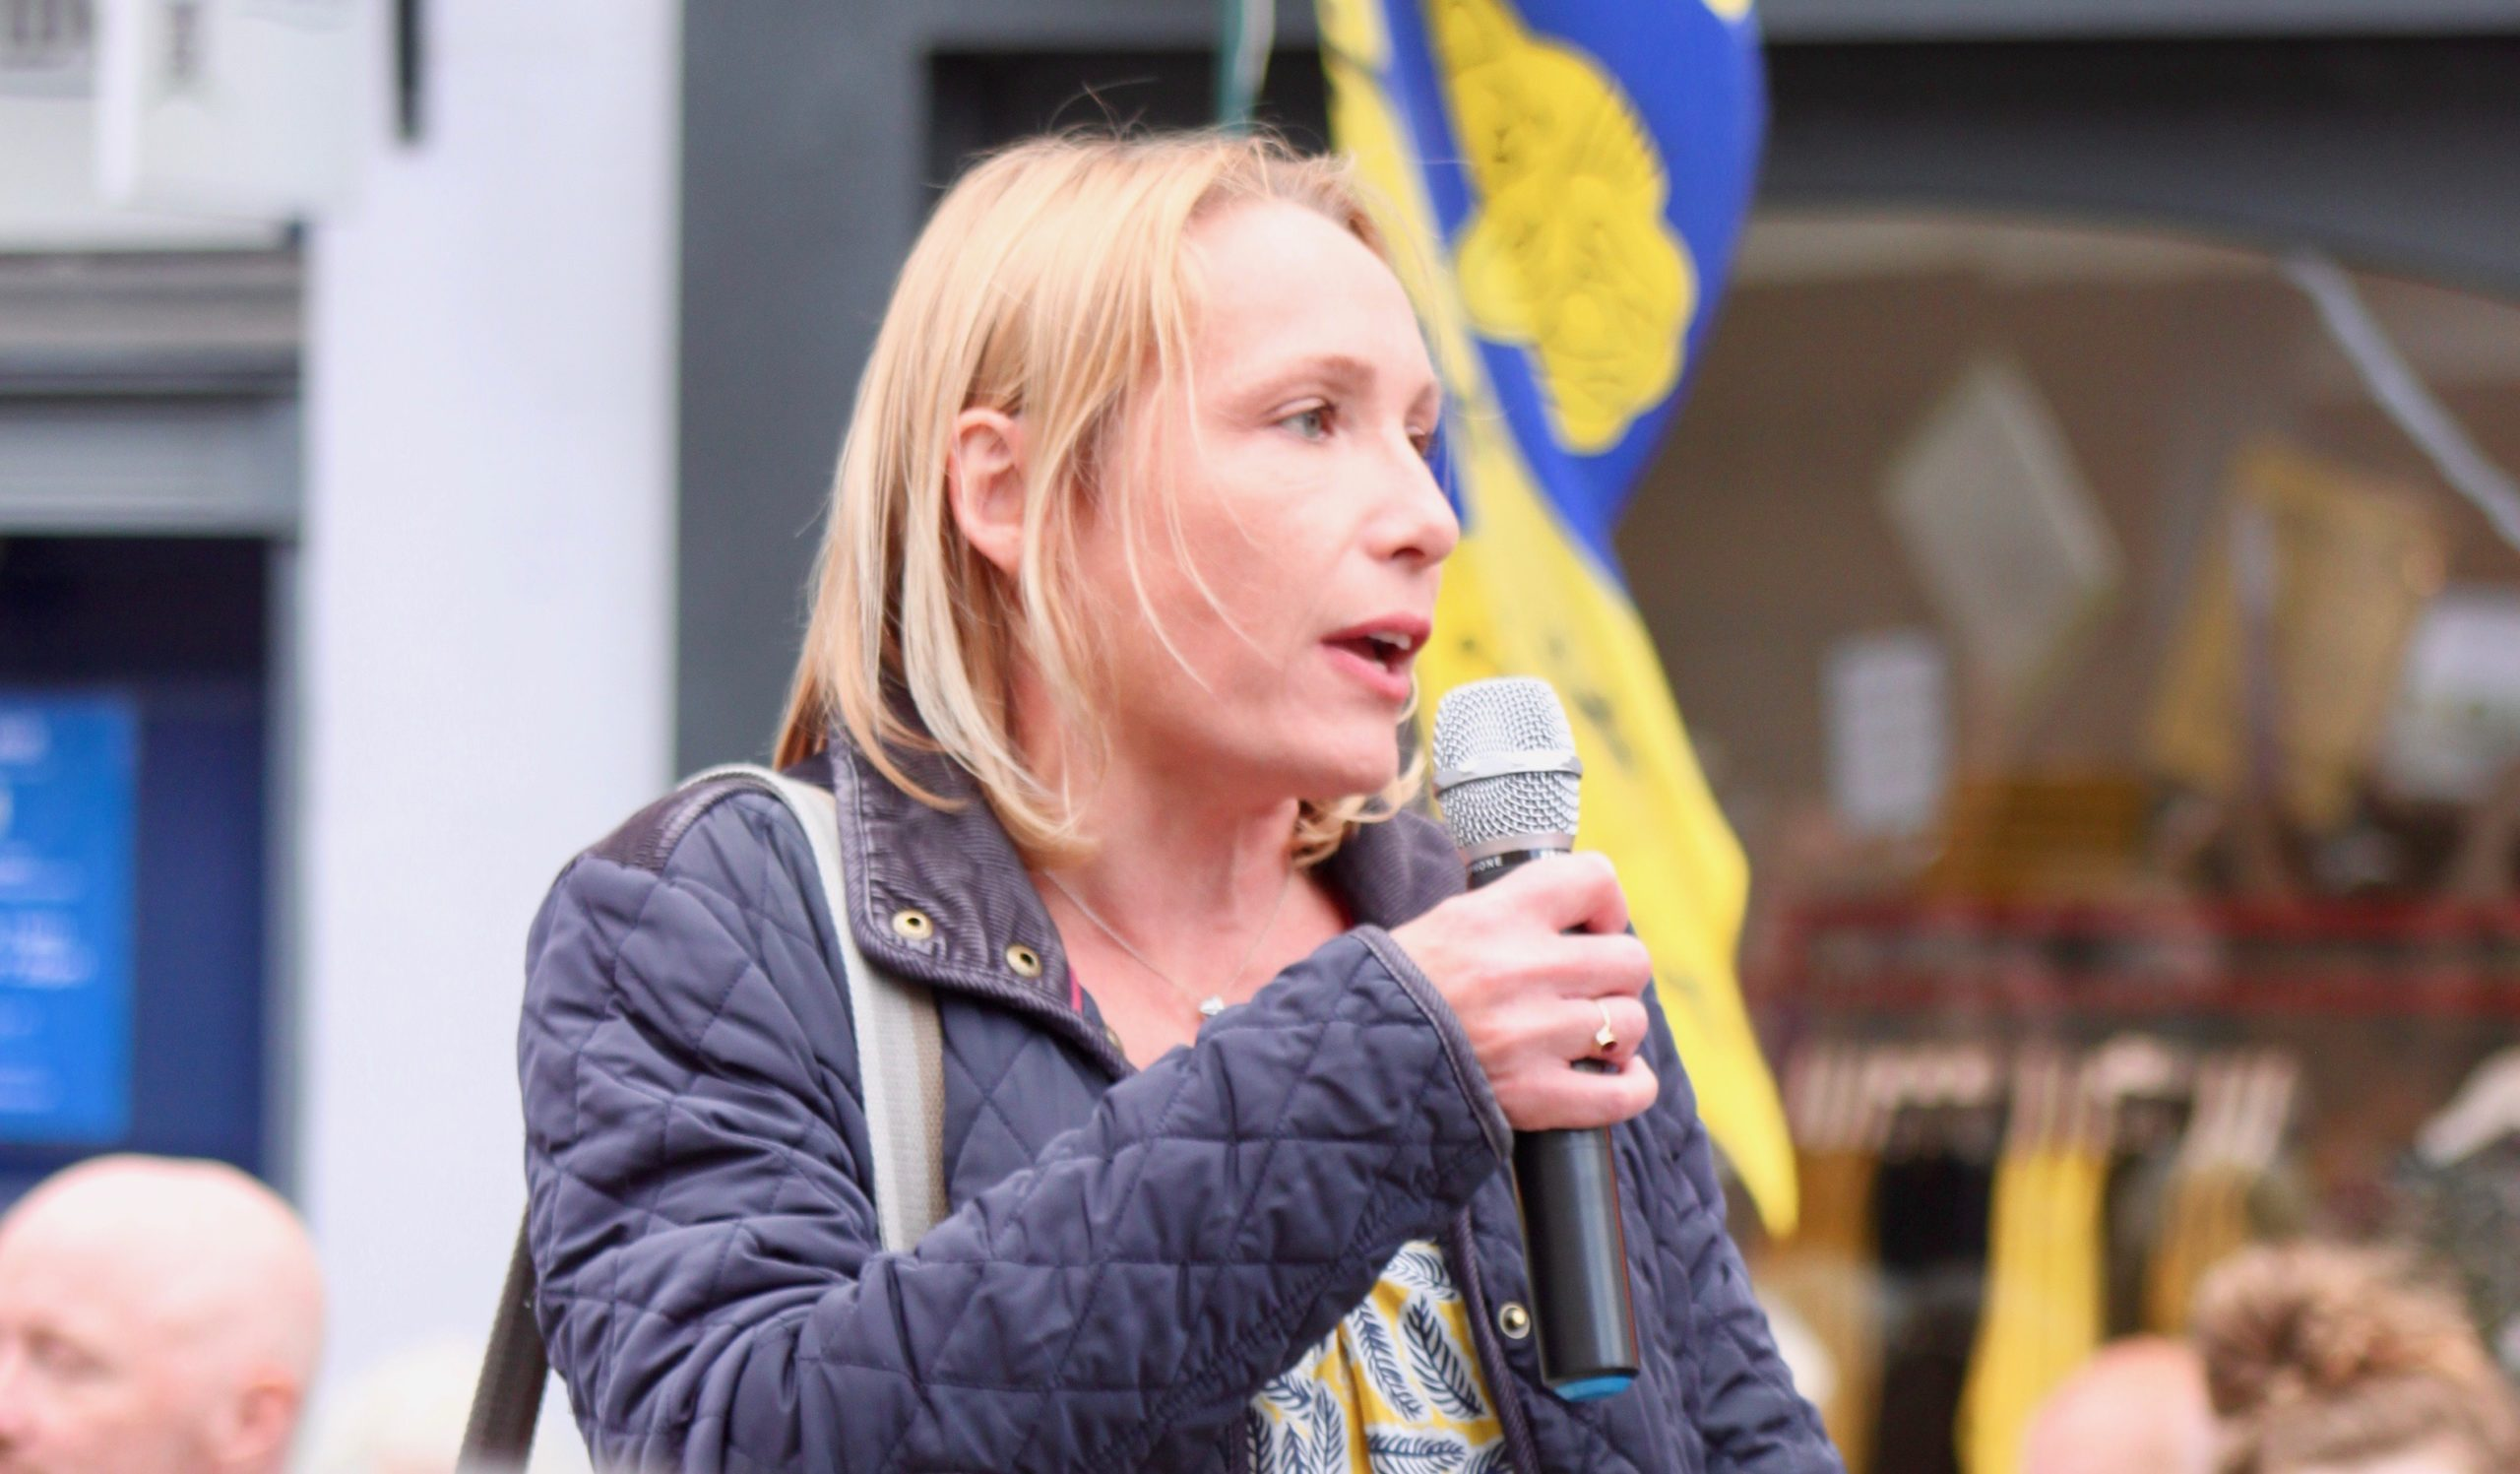 Helen campaigning in 2019